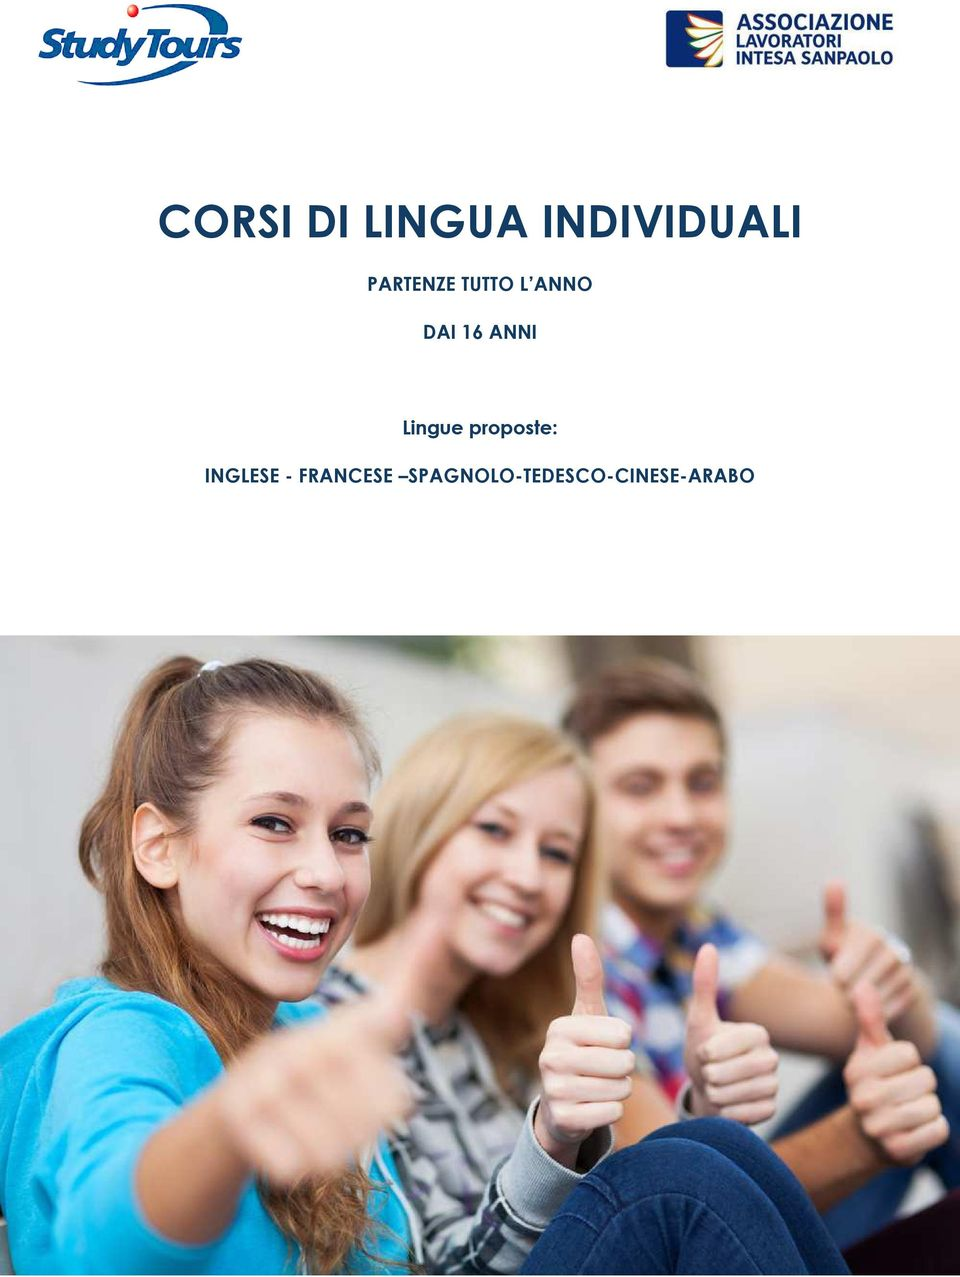 ANNI Lingue proposte: INGLESE -